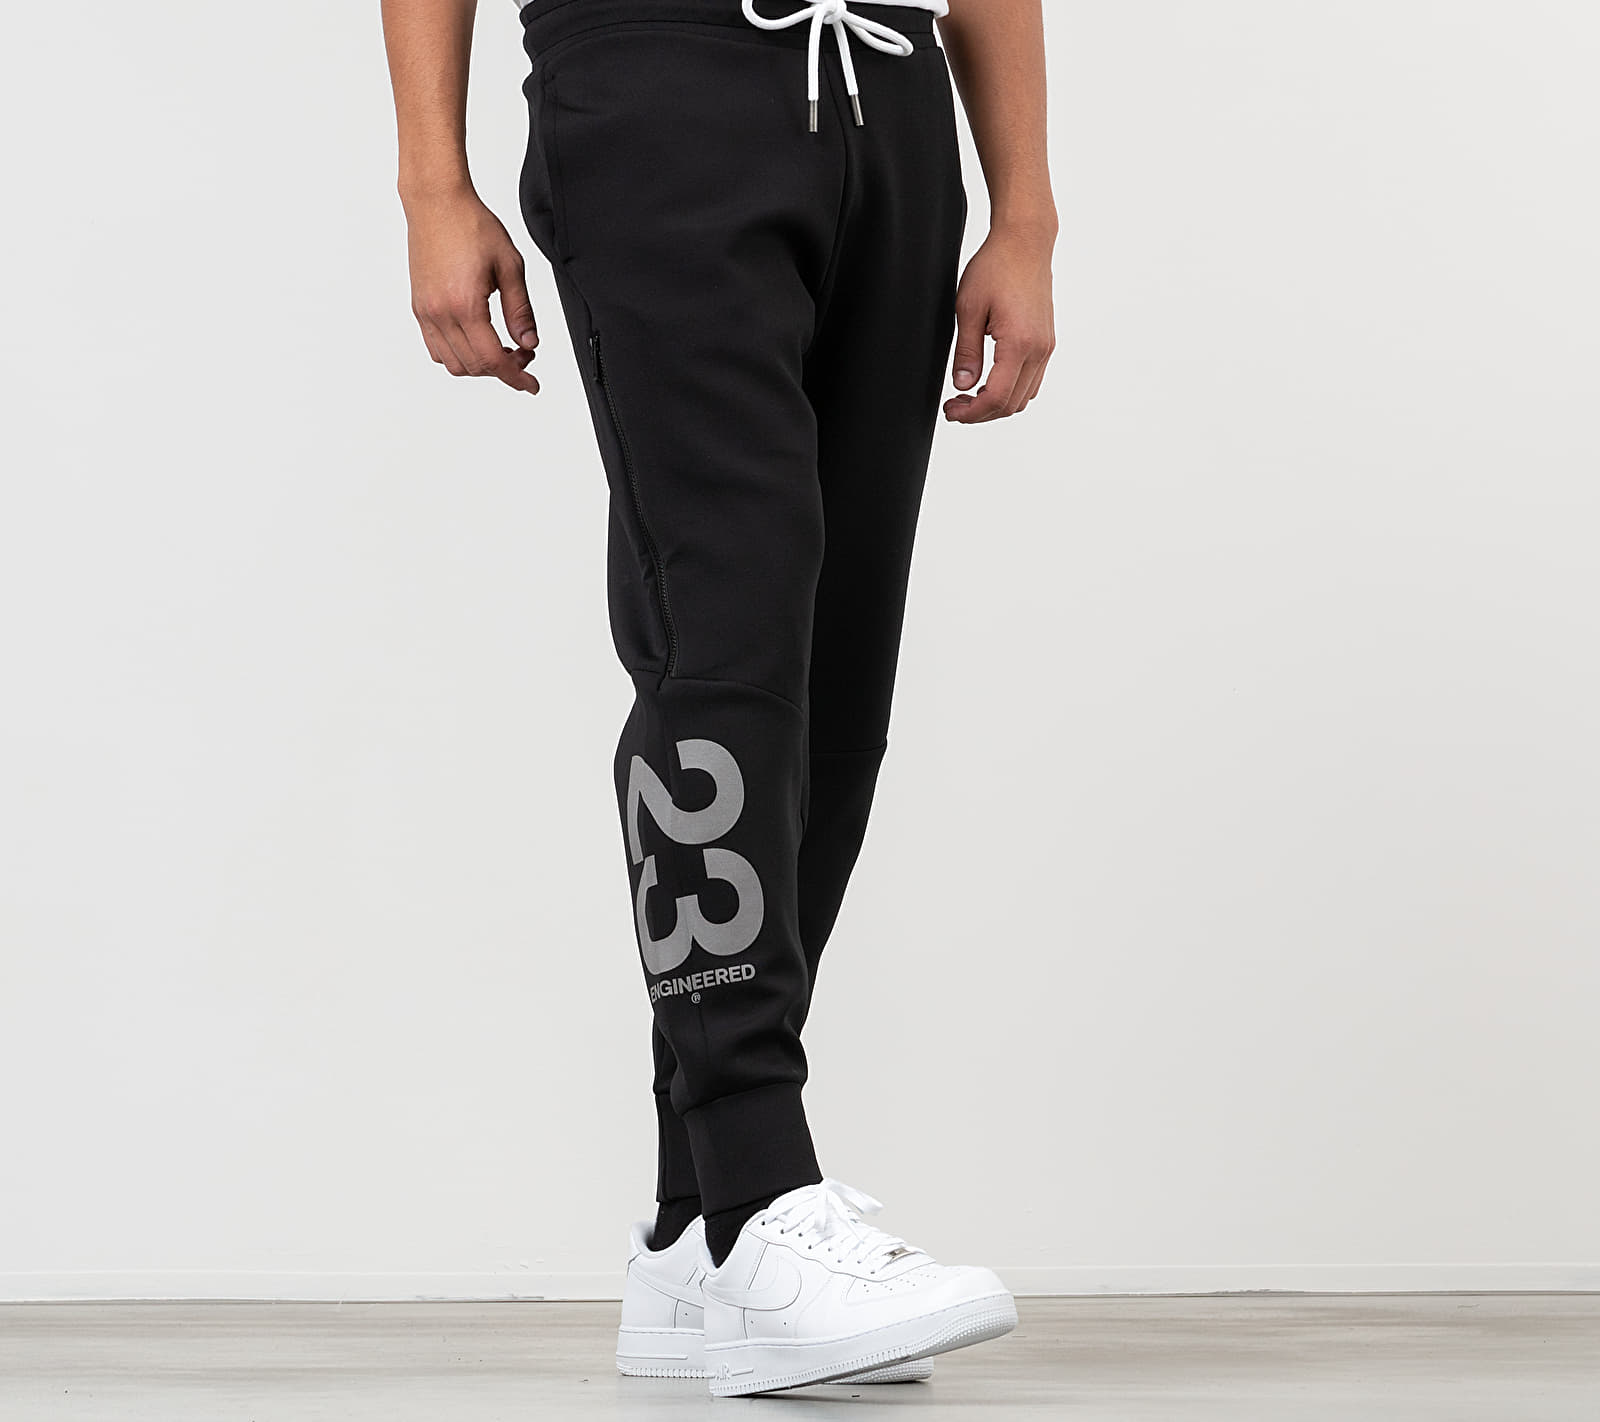 Jordan 23 Engineered Fleece Pants Black/ White